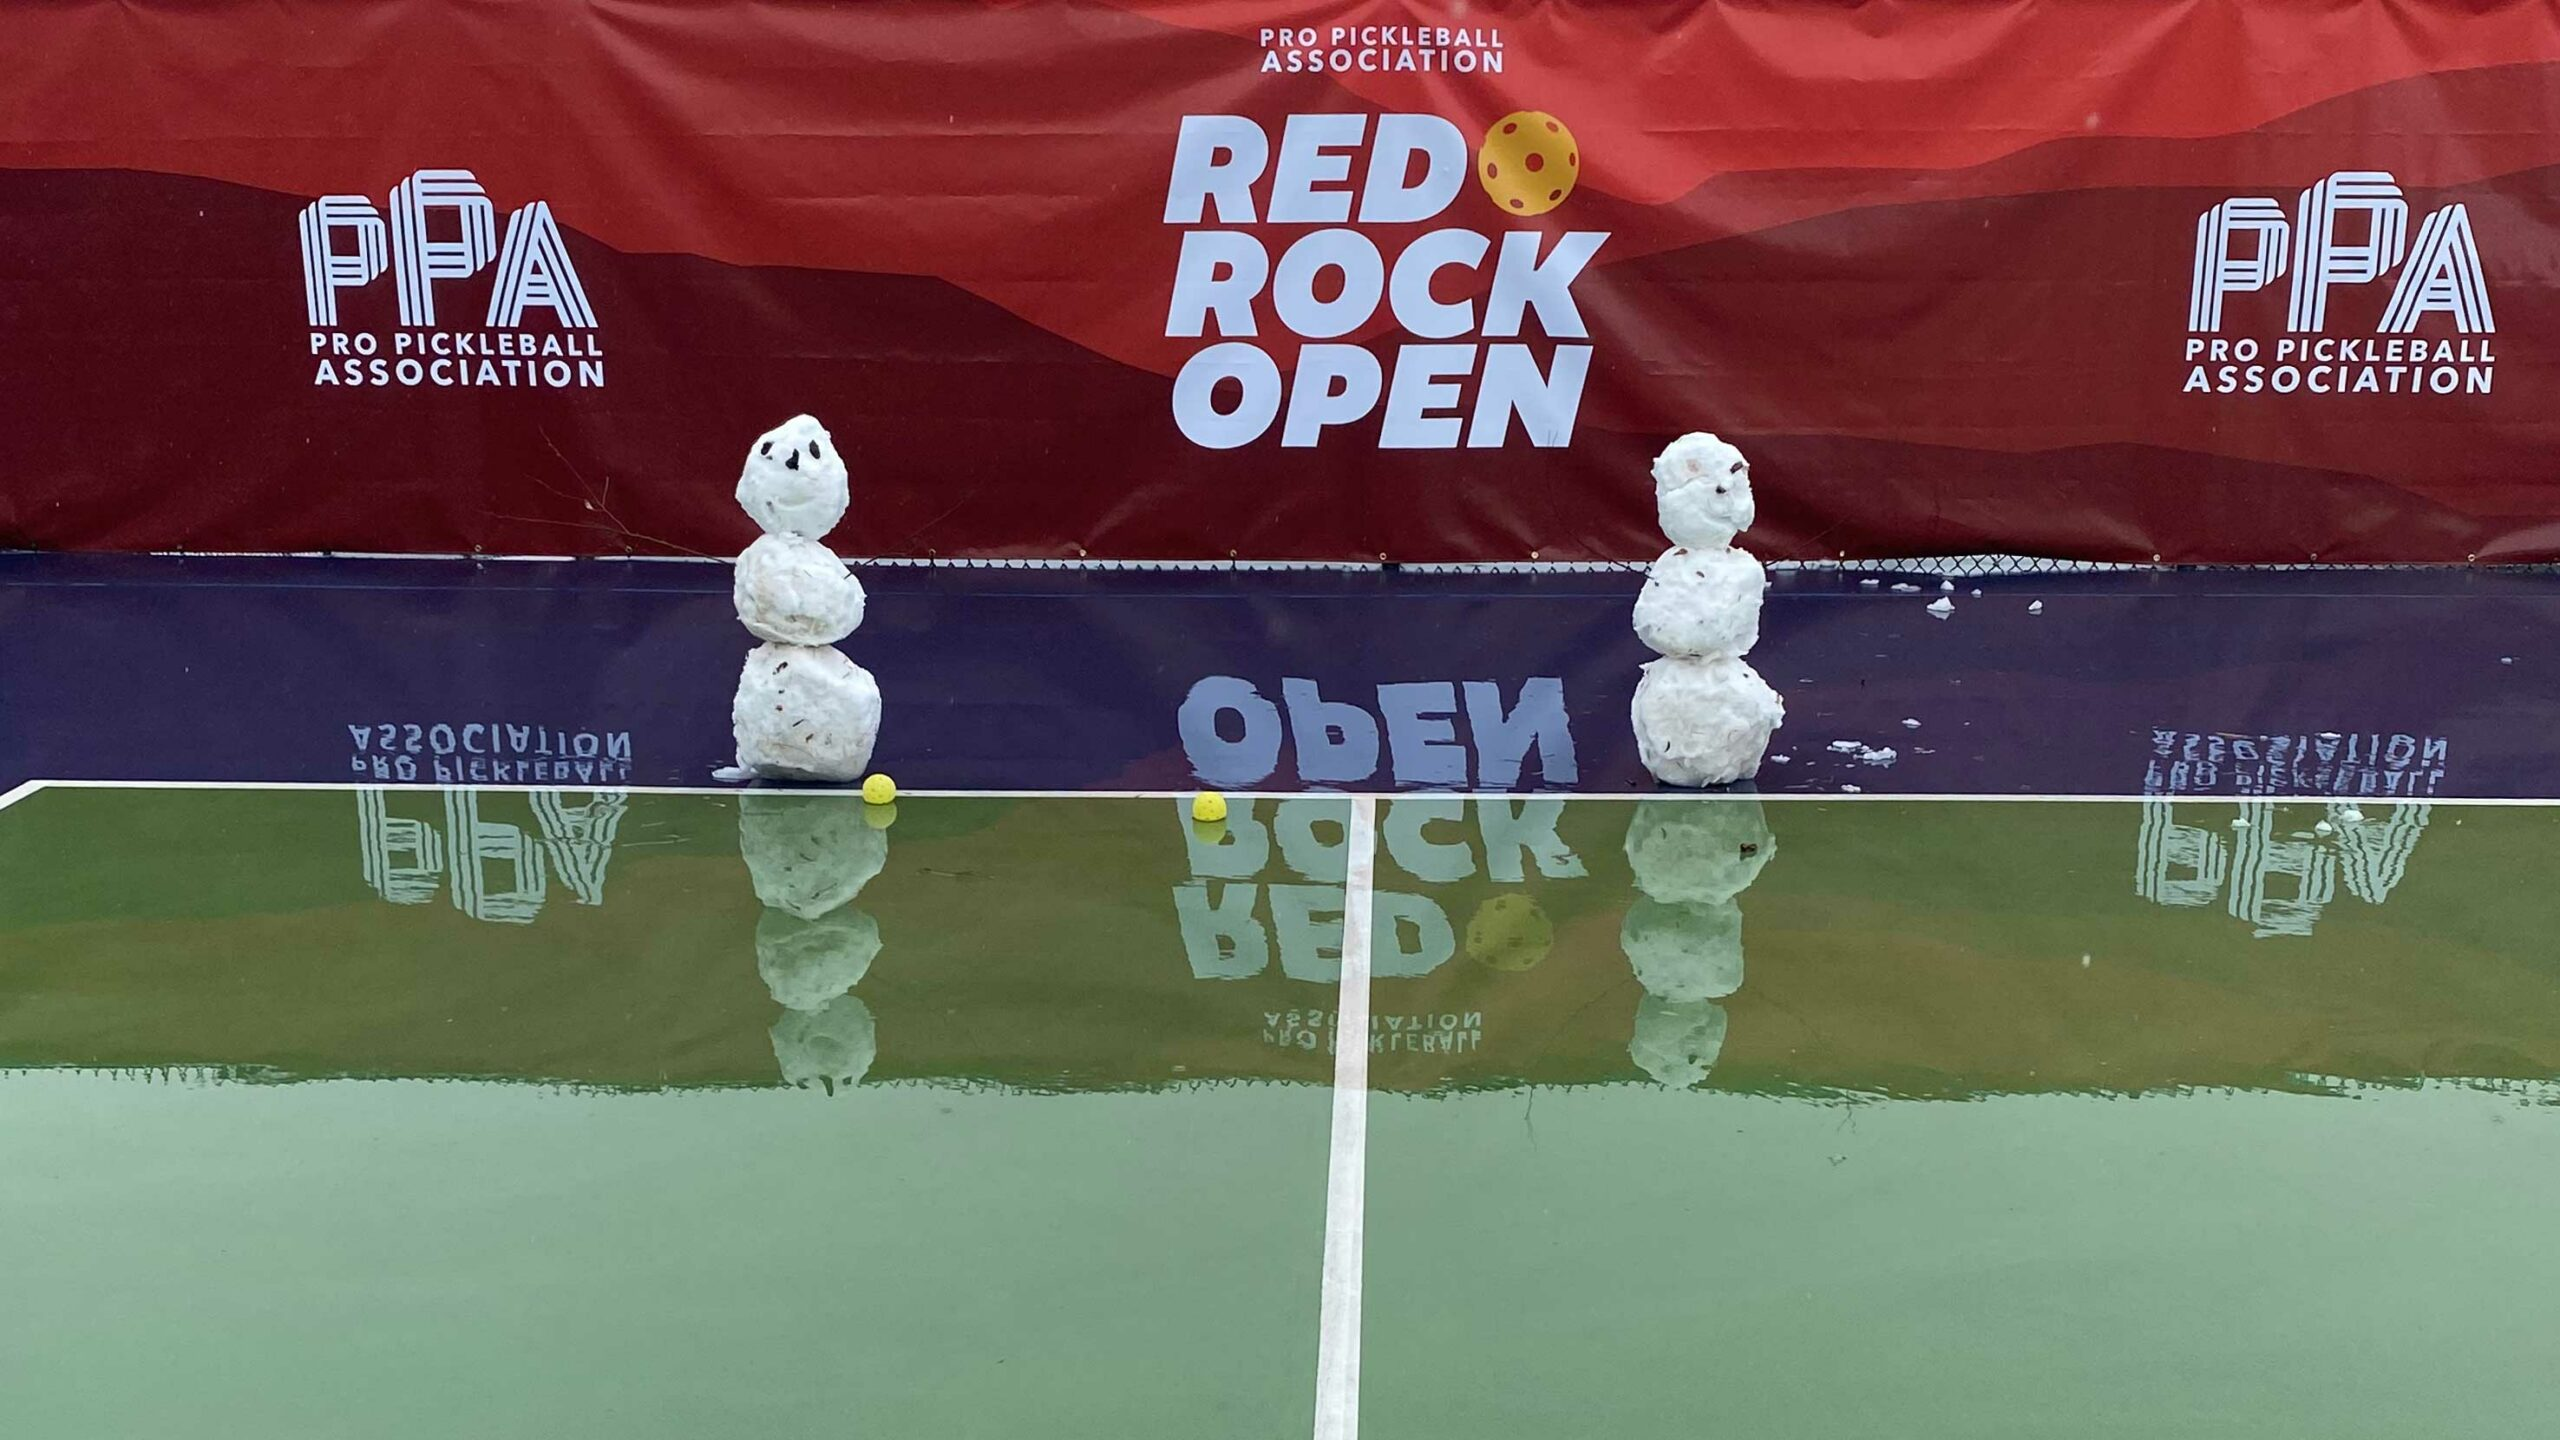 Red Rock Open Blasted by Rain, Snow, and Ben Johns